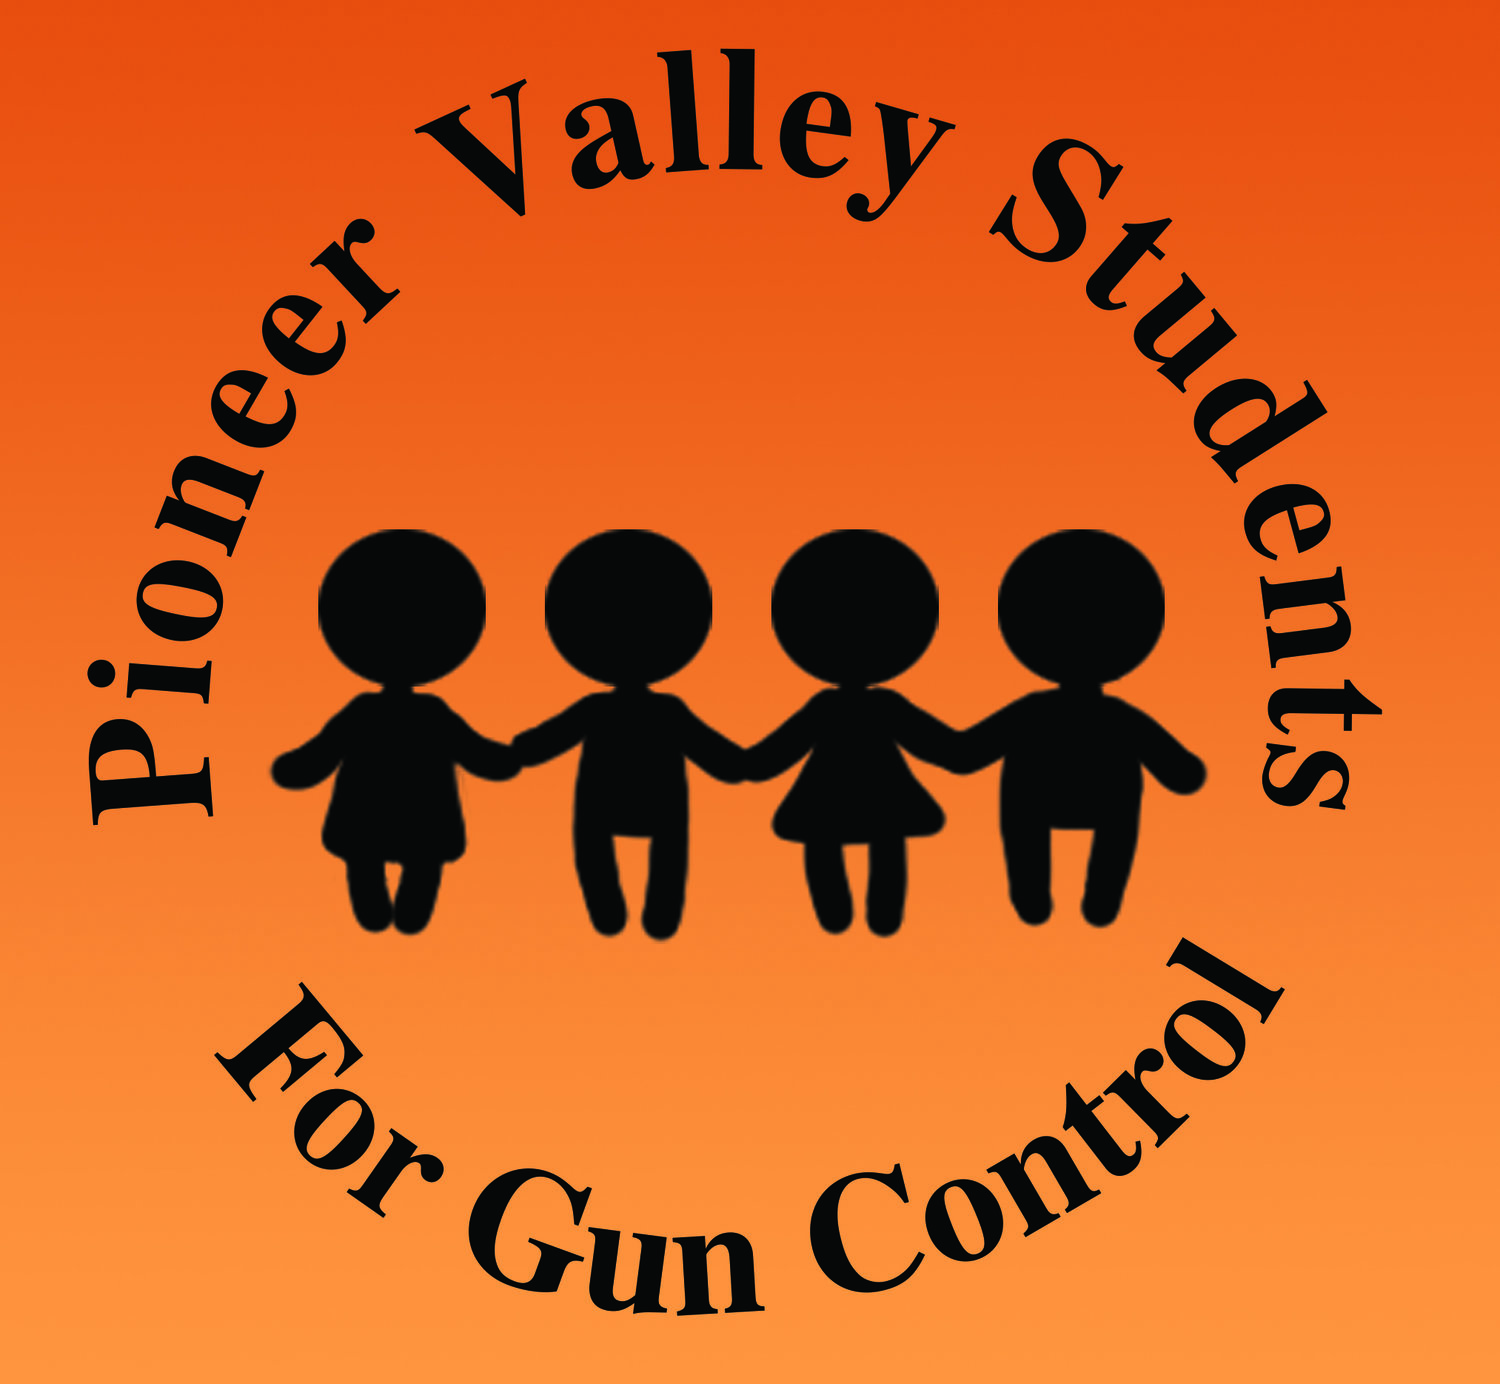 Pioneer Valley Students For Gun Control